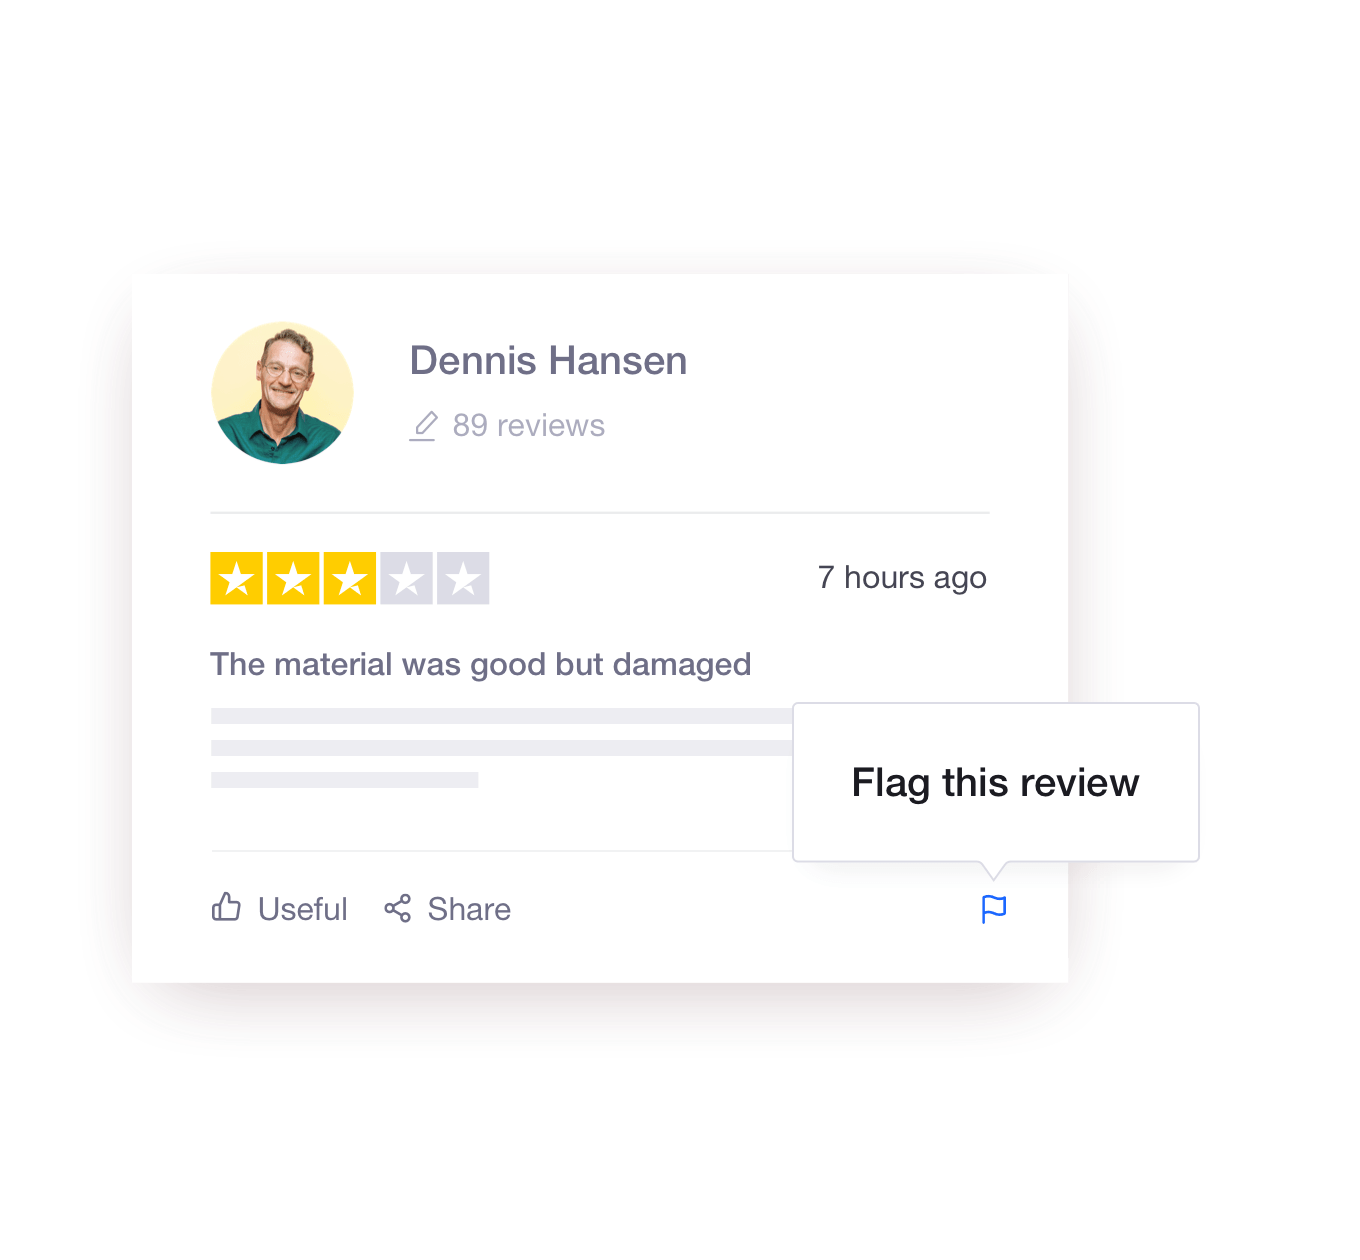 Illustration of Trustpilot's review flagging functionality